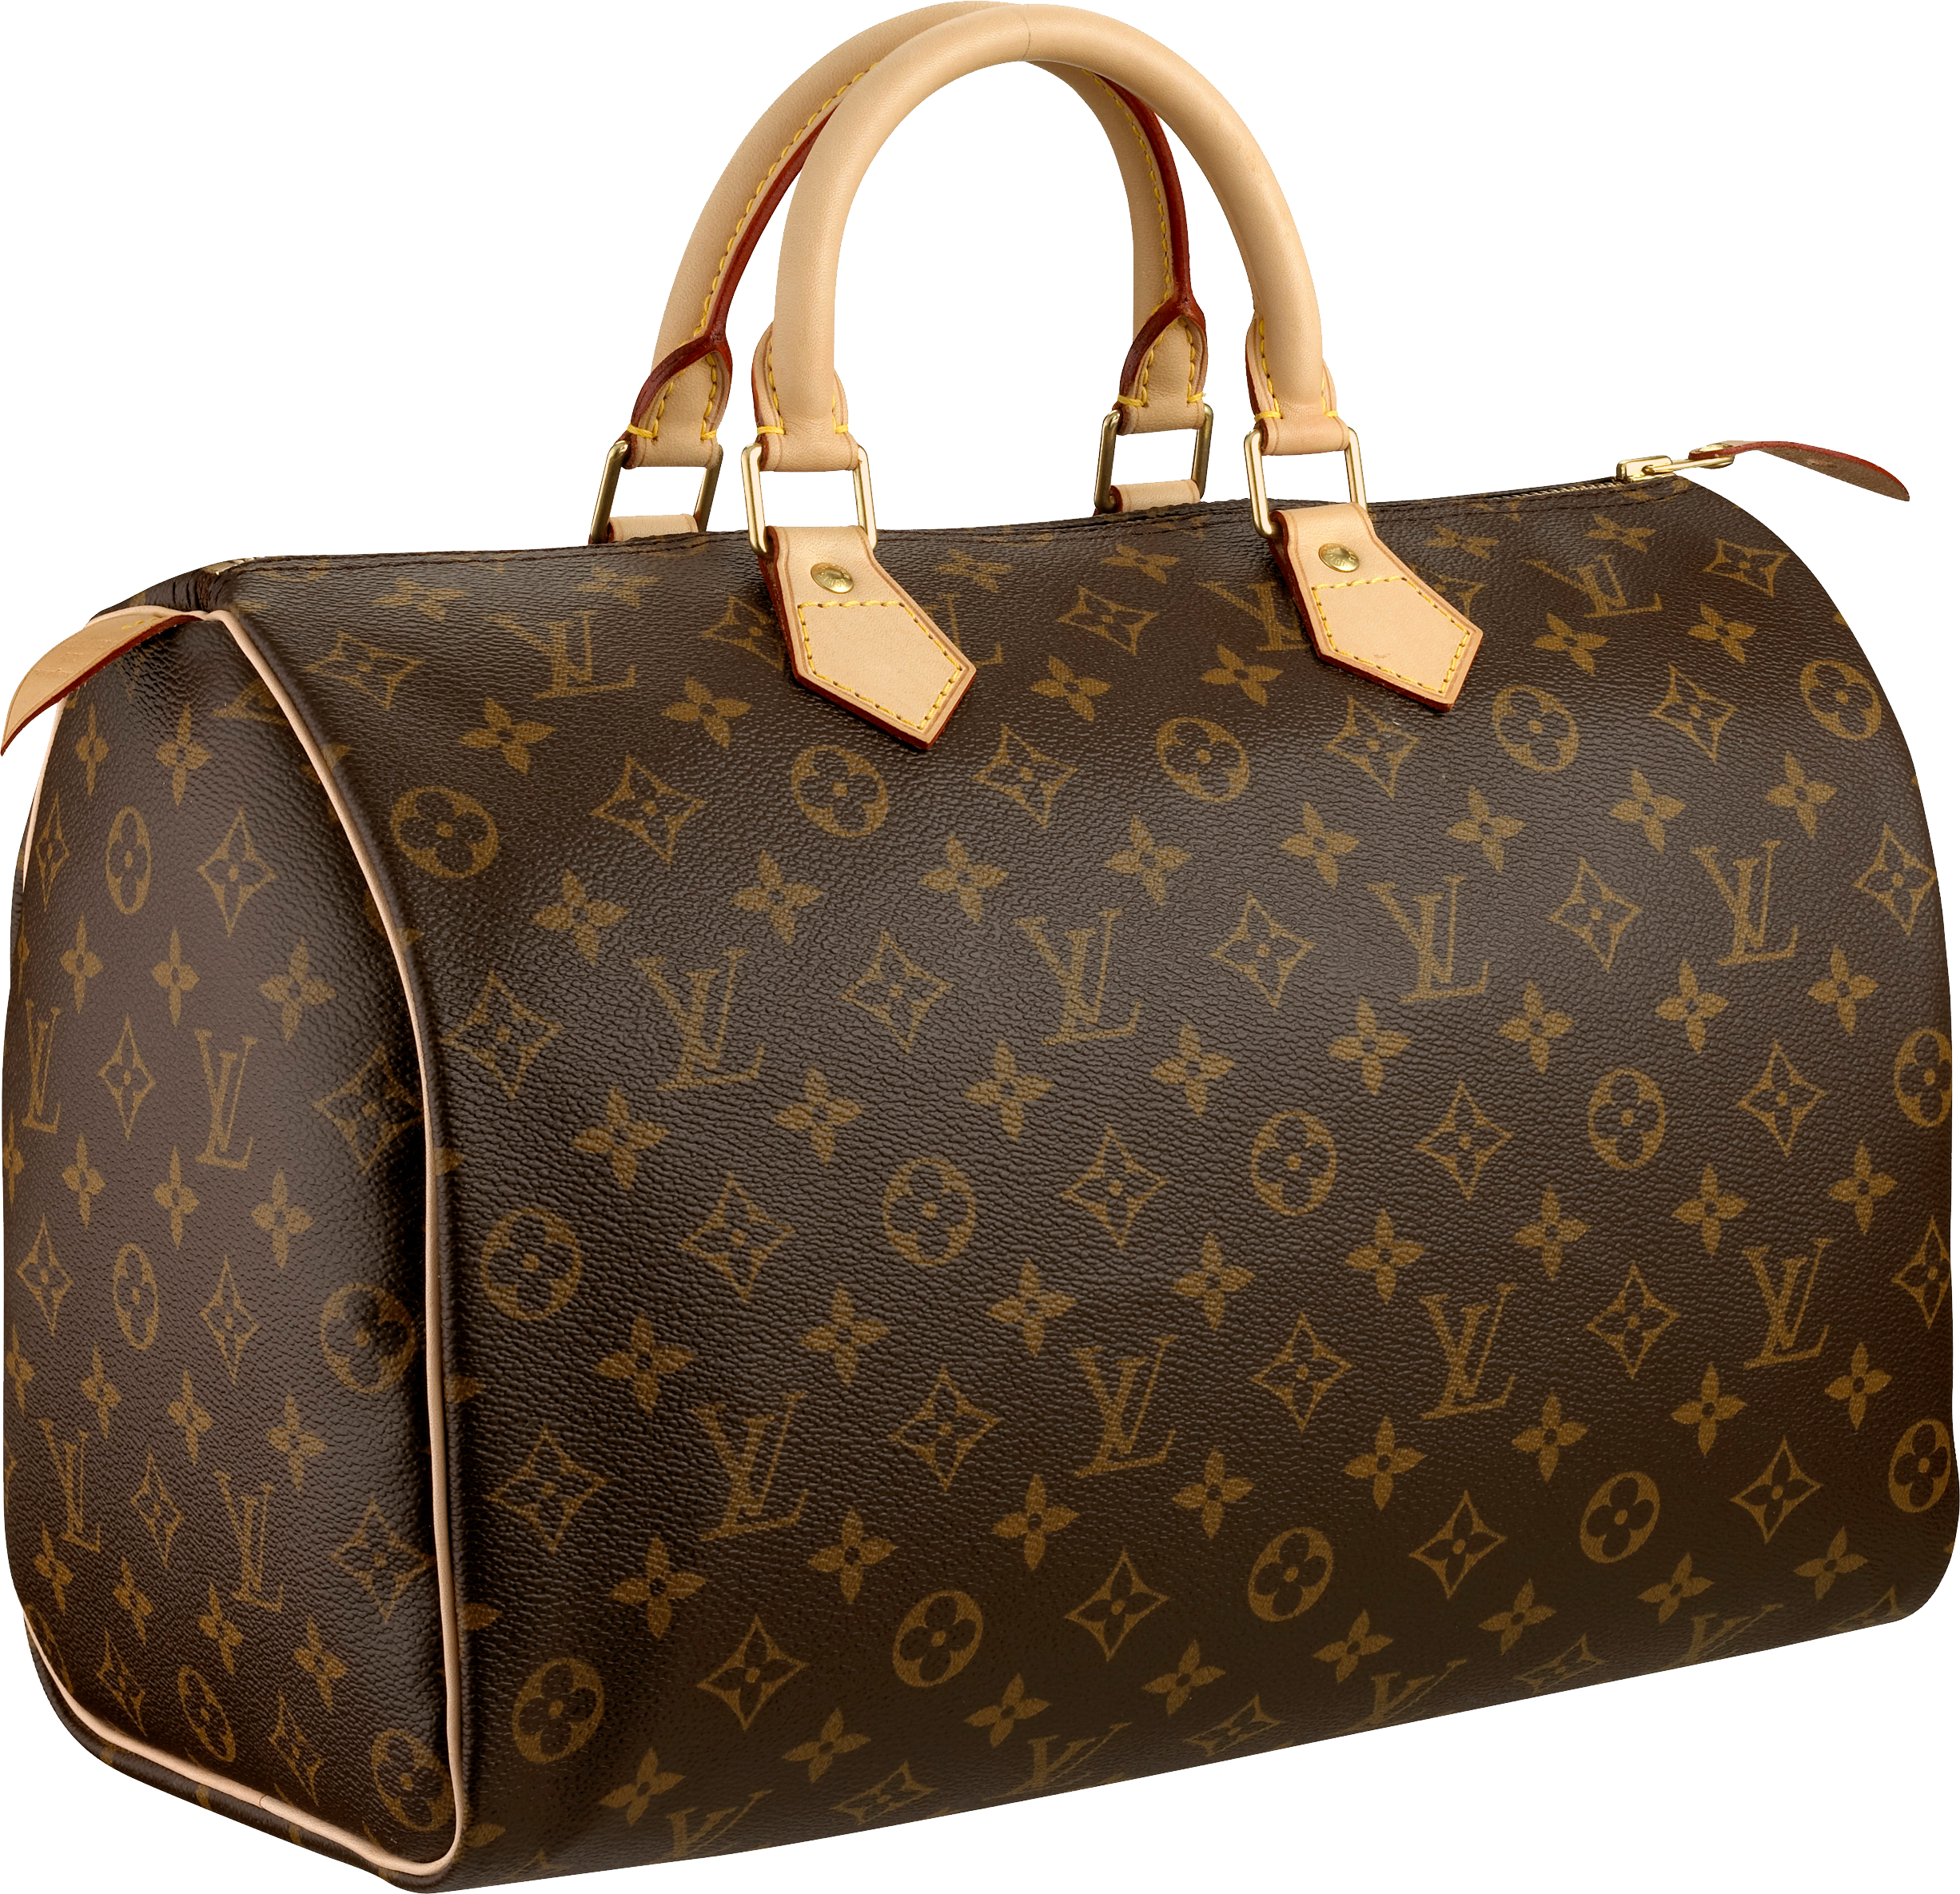 Louis Vuitton Women bag PNG image